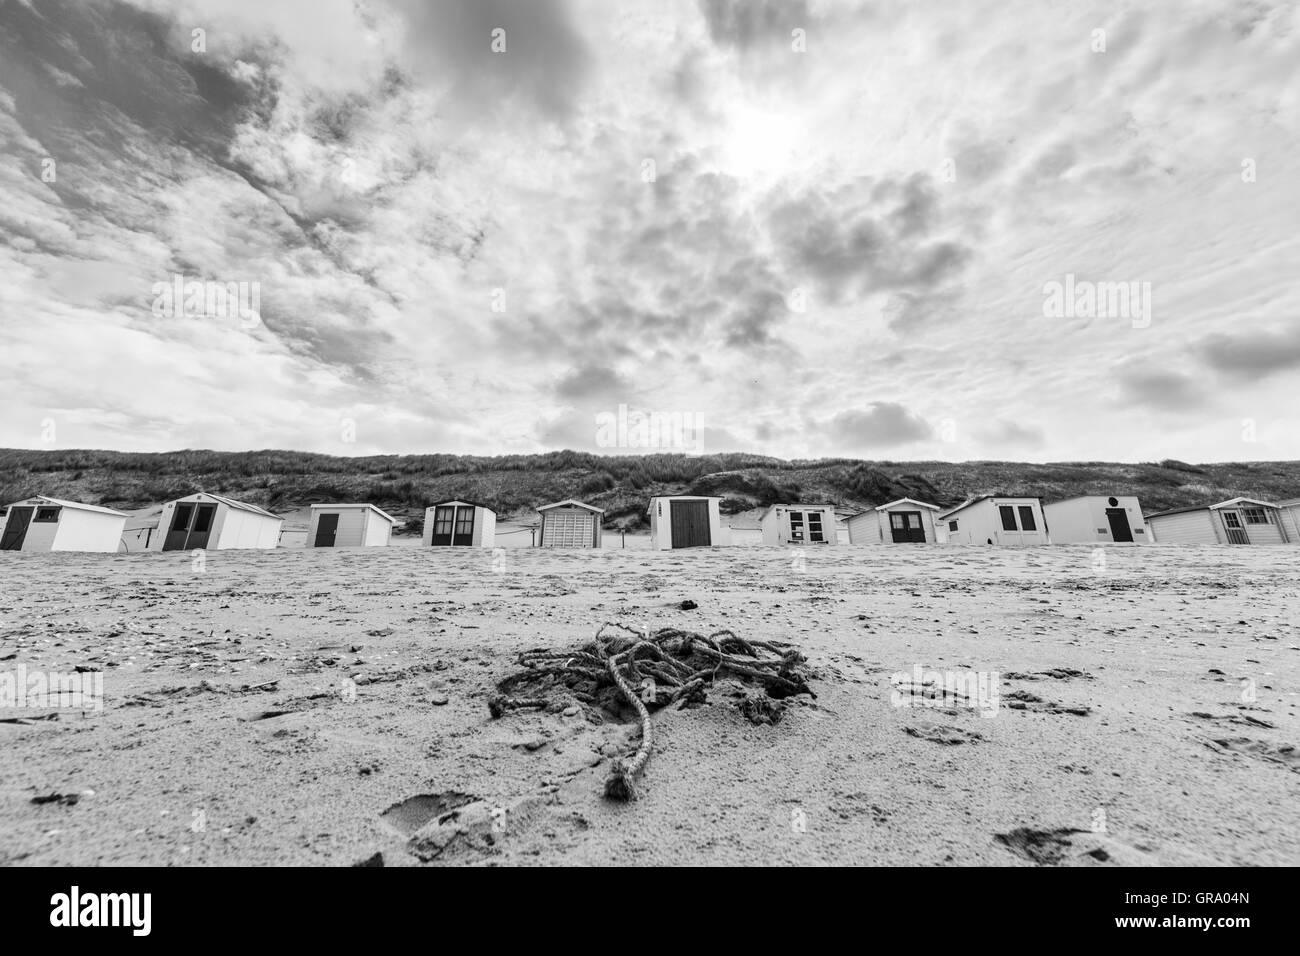 Blacj And White Photo Of A Netherland Beach With Dramatic Clouds And Small Bathing Huts - Stock Image